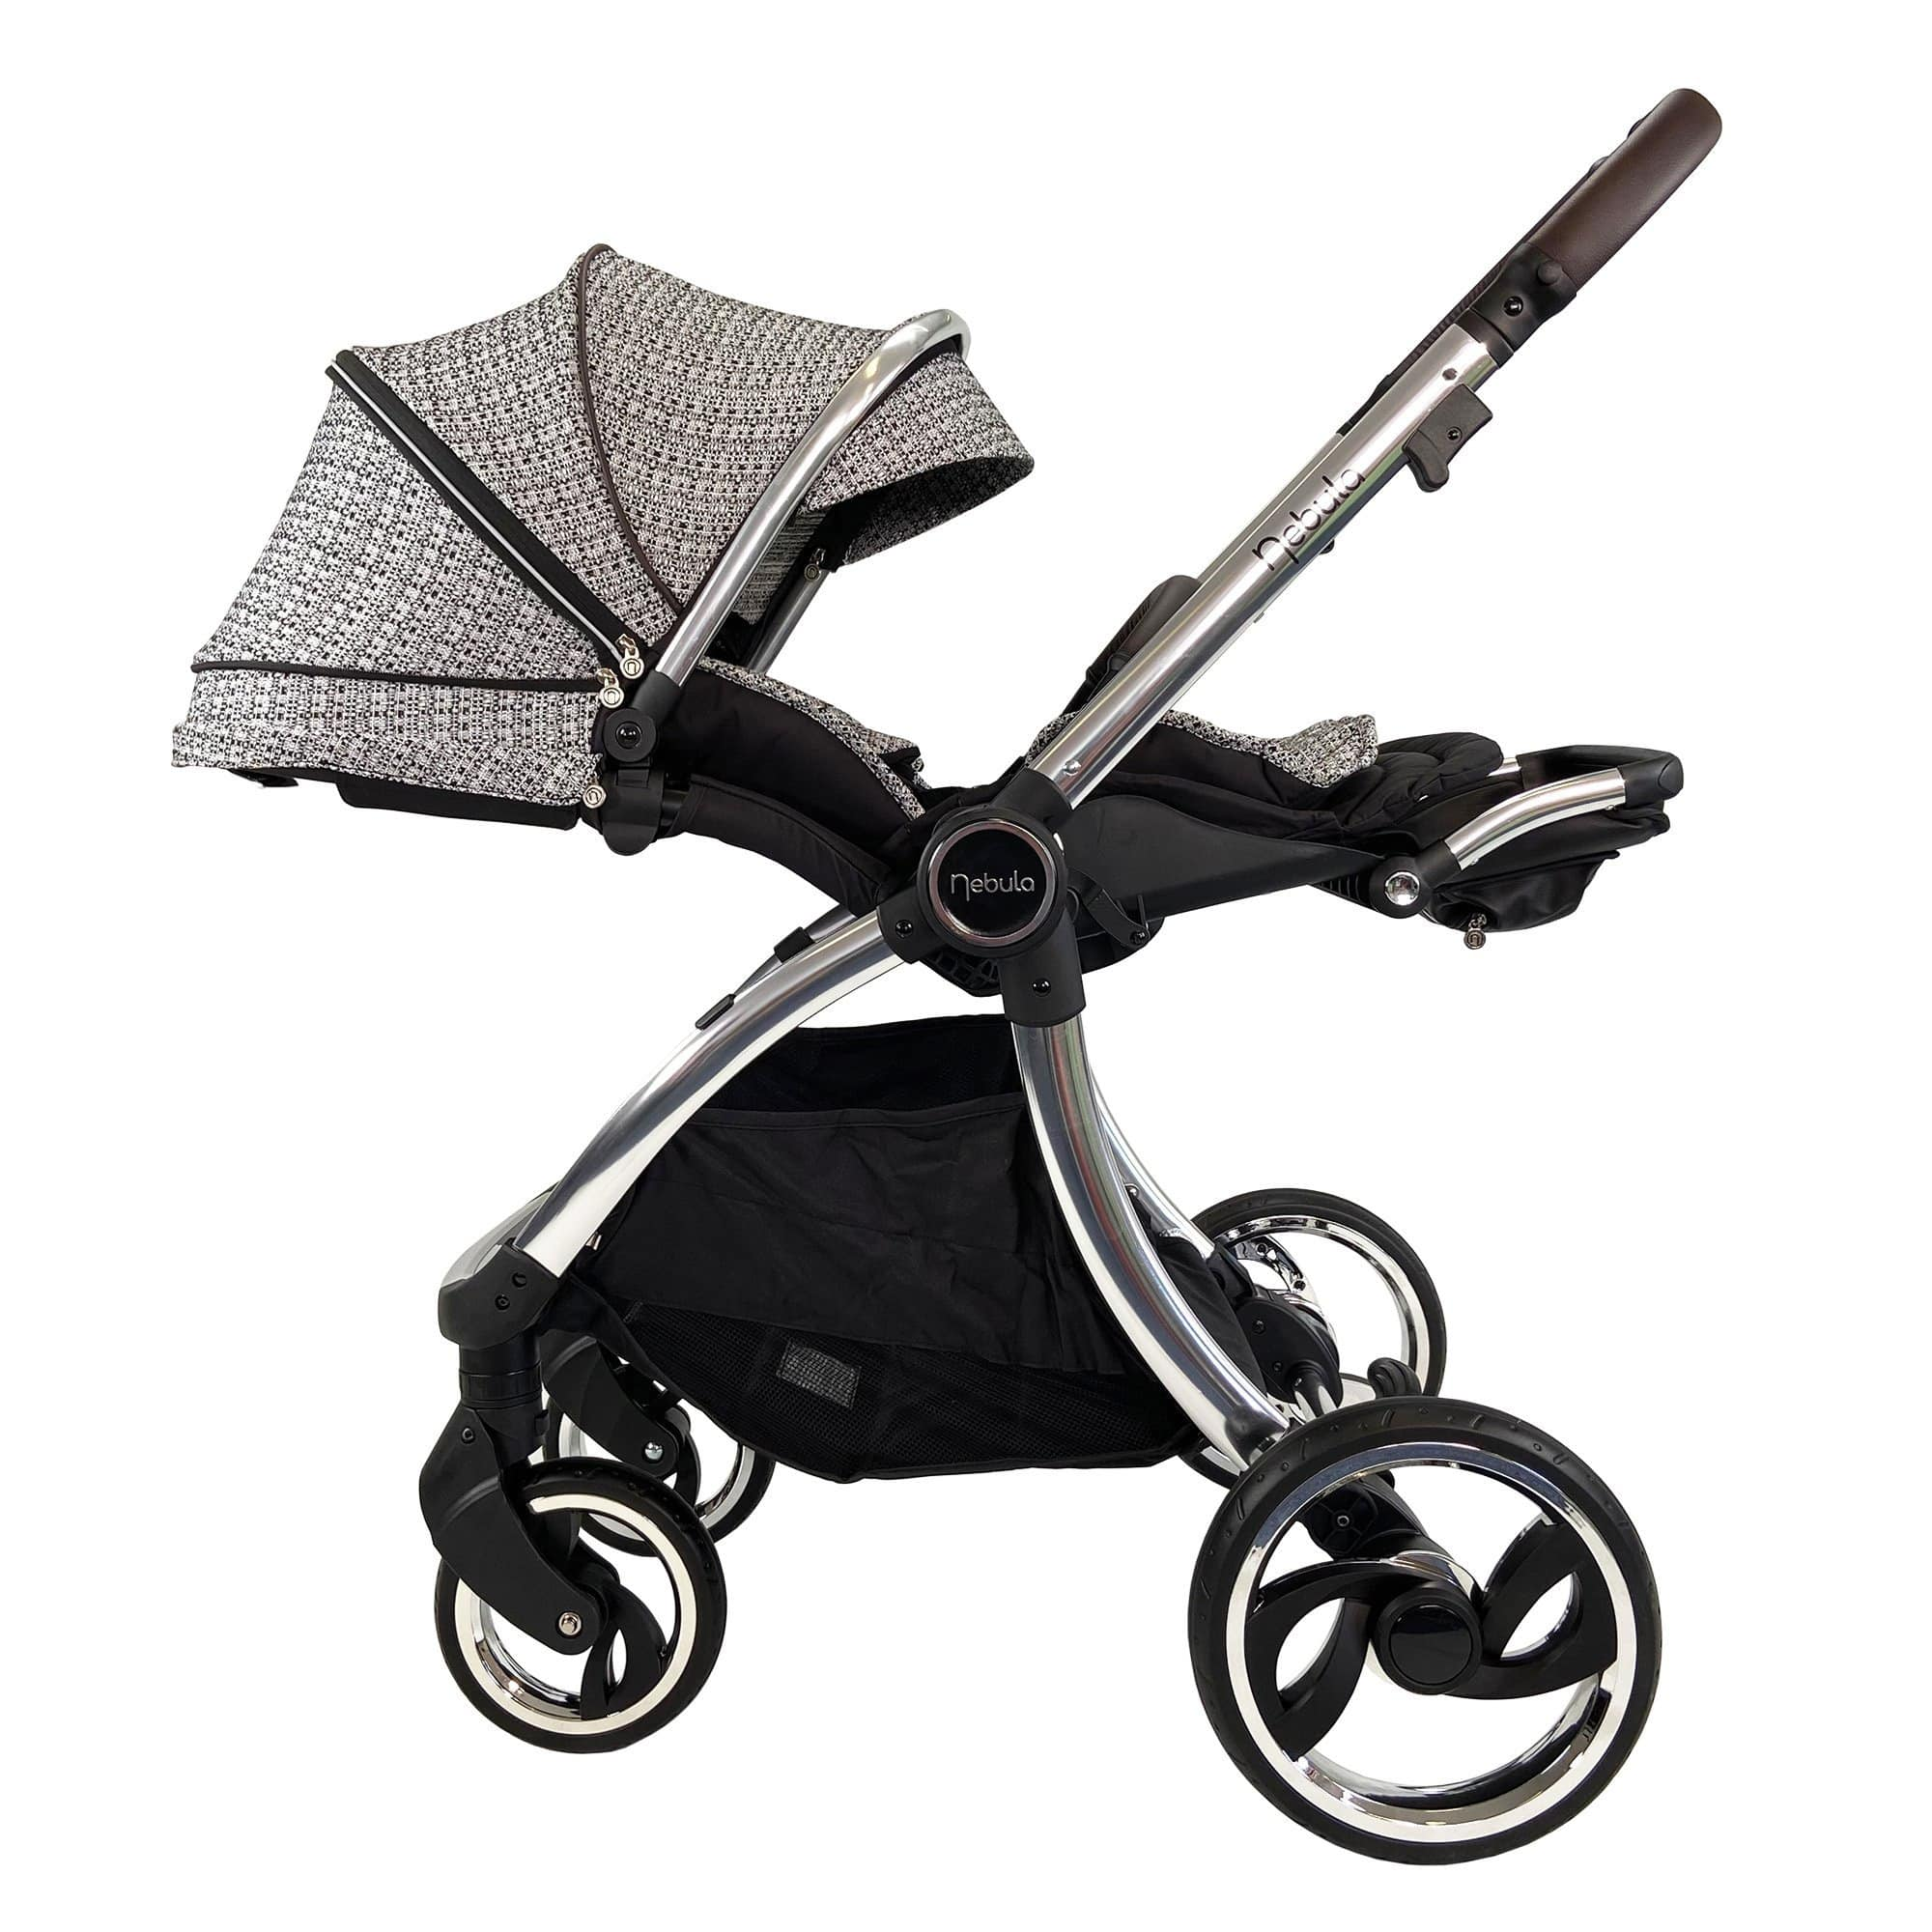 Venture Nebula Signature stroller when in lay flat position